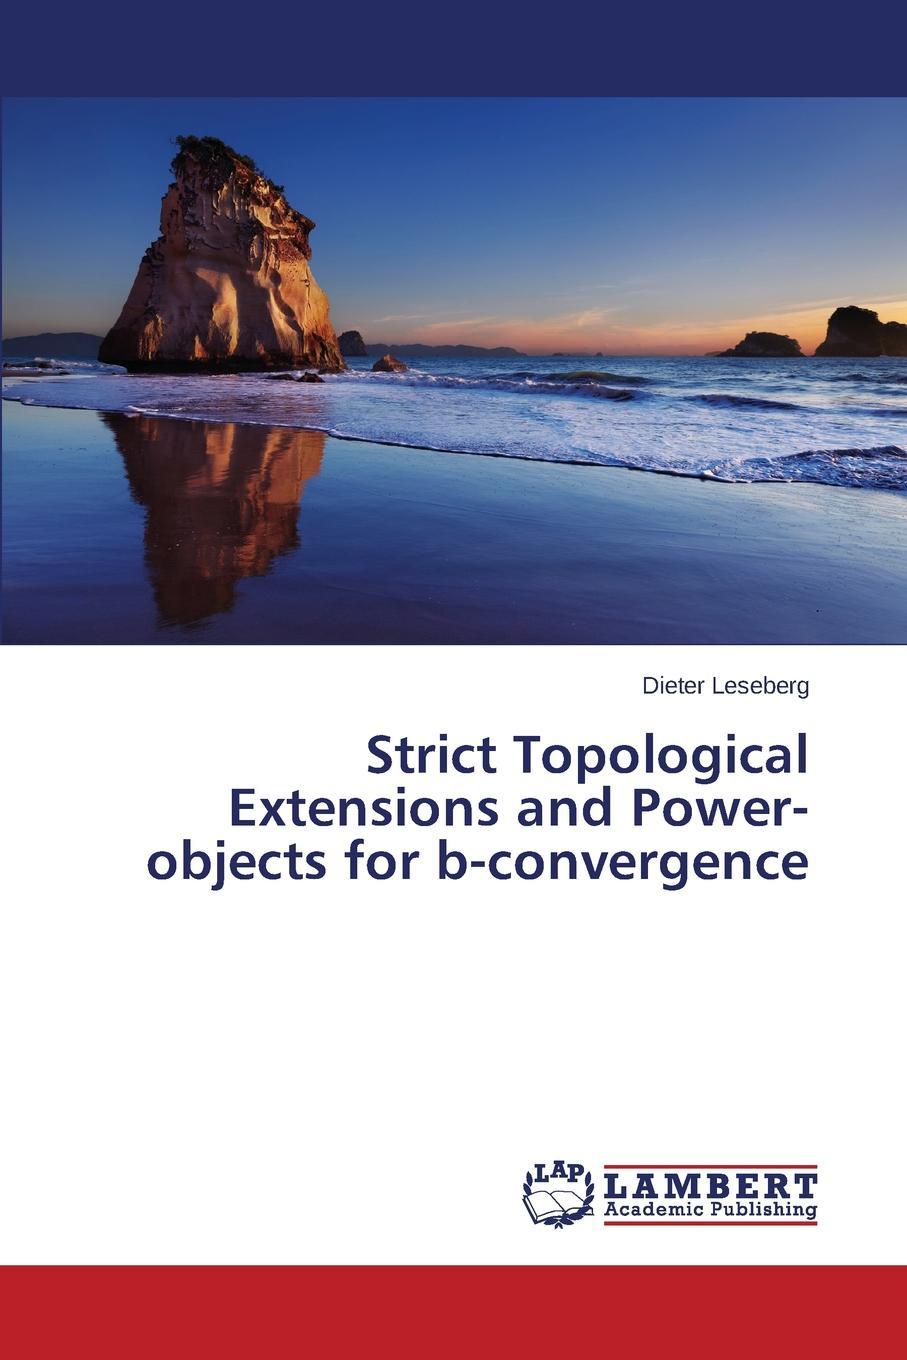 Leseberg Dieter Strict Topological Extensions and Power-objects for b-convergence media convergence